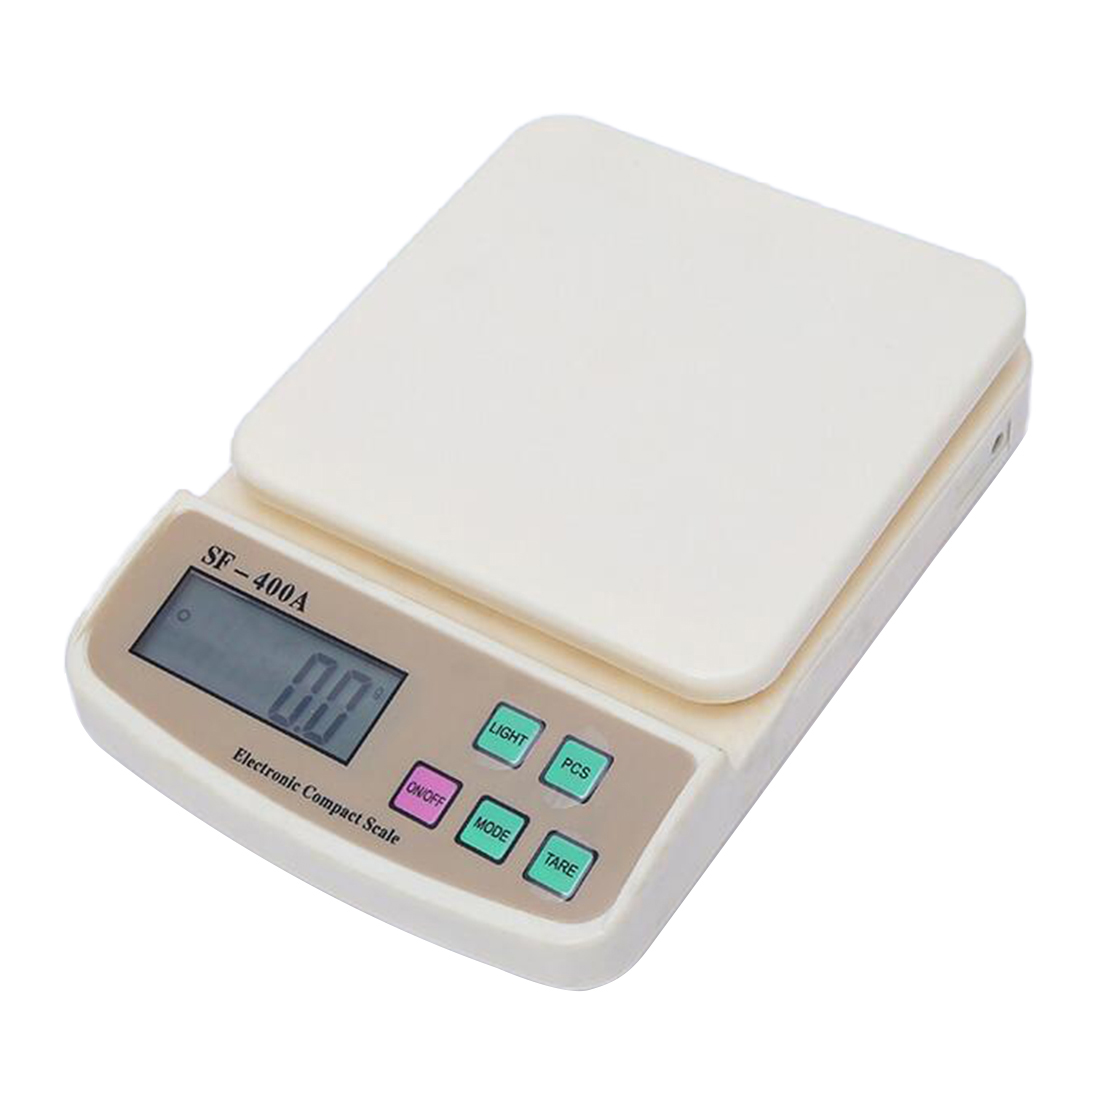 500g/2kg/5kg 0.1g/1g Electronic Kitchen Scale Digital Food Scale Jewelry Scale Weighing Scale LCD High Precision Measuring Tools